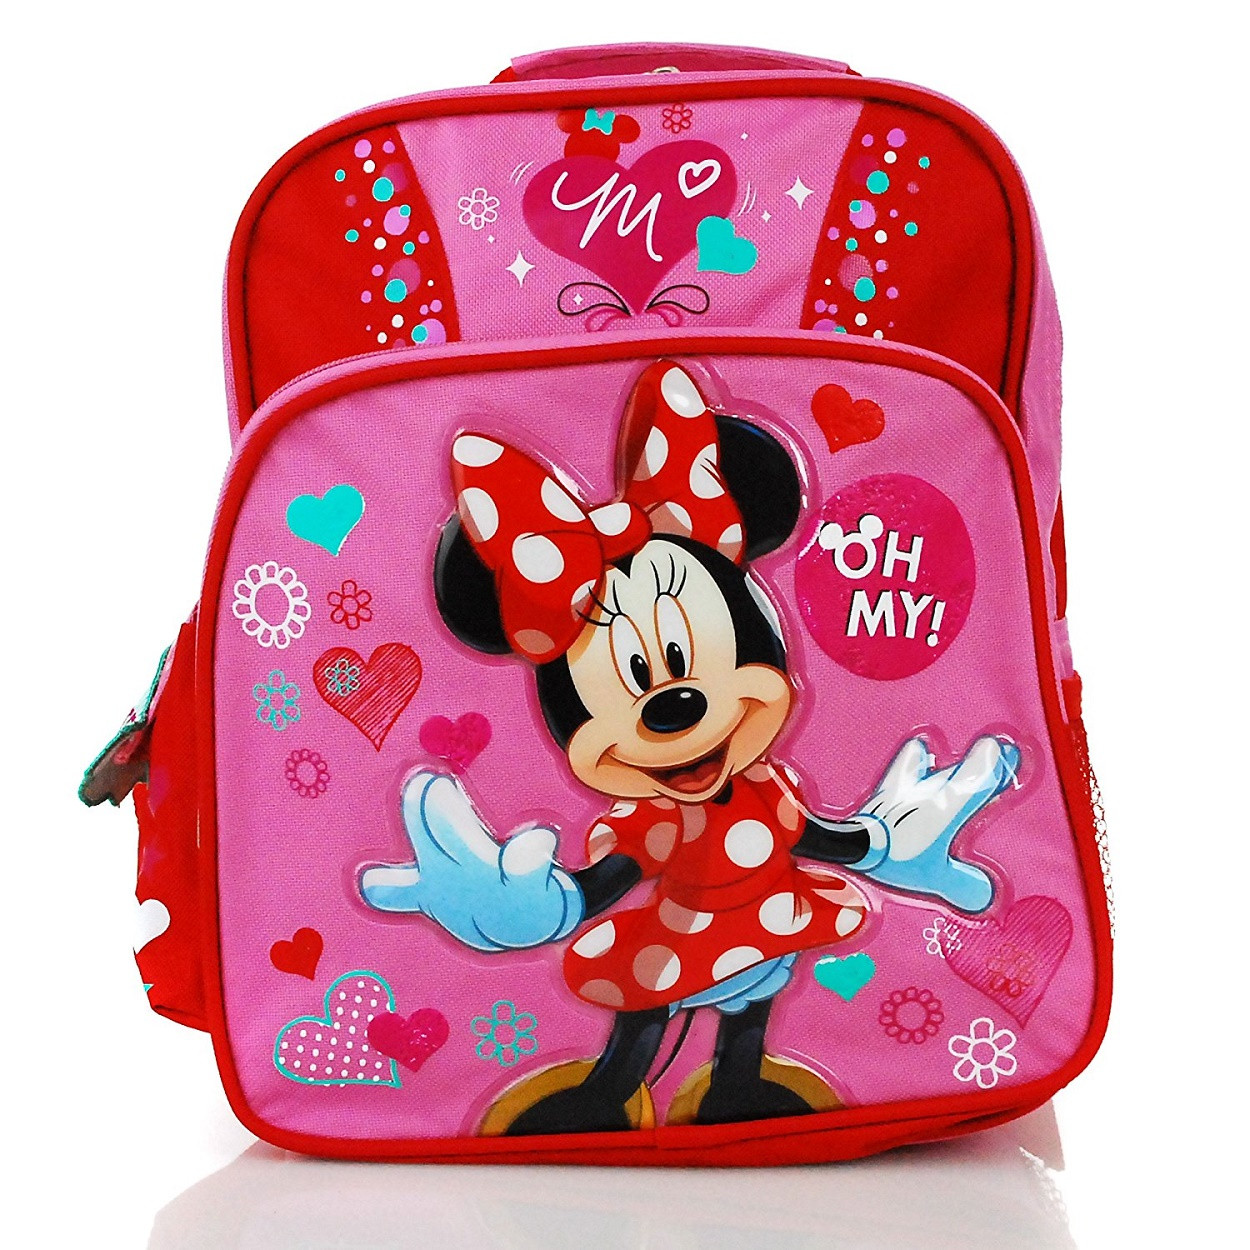 Backpack - Minnie Mouse - Small 12 Inch - Oh My!